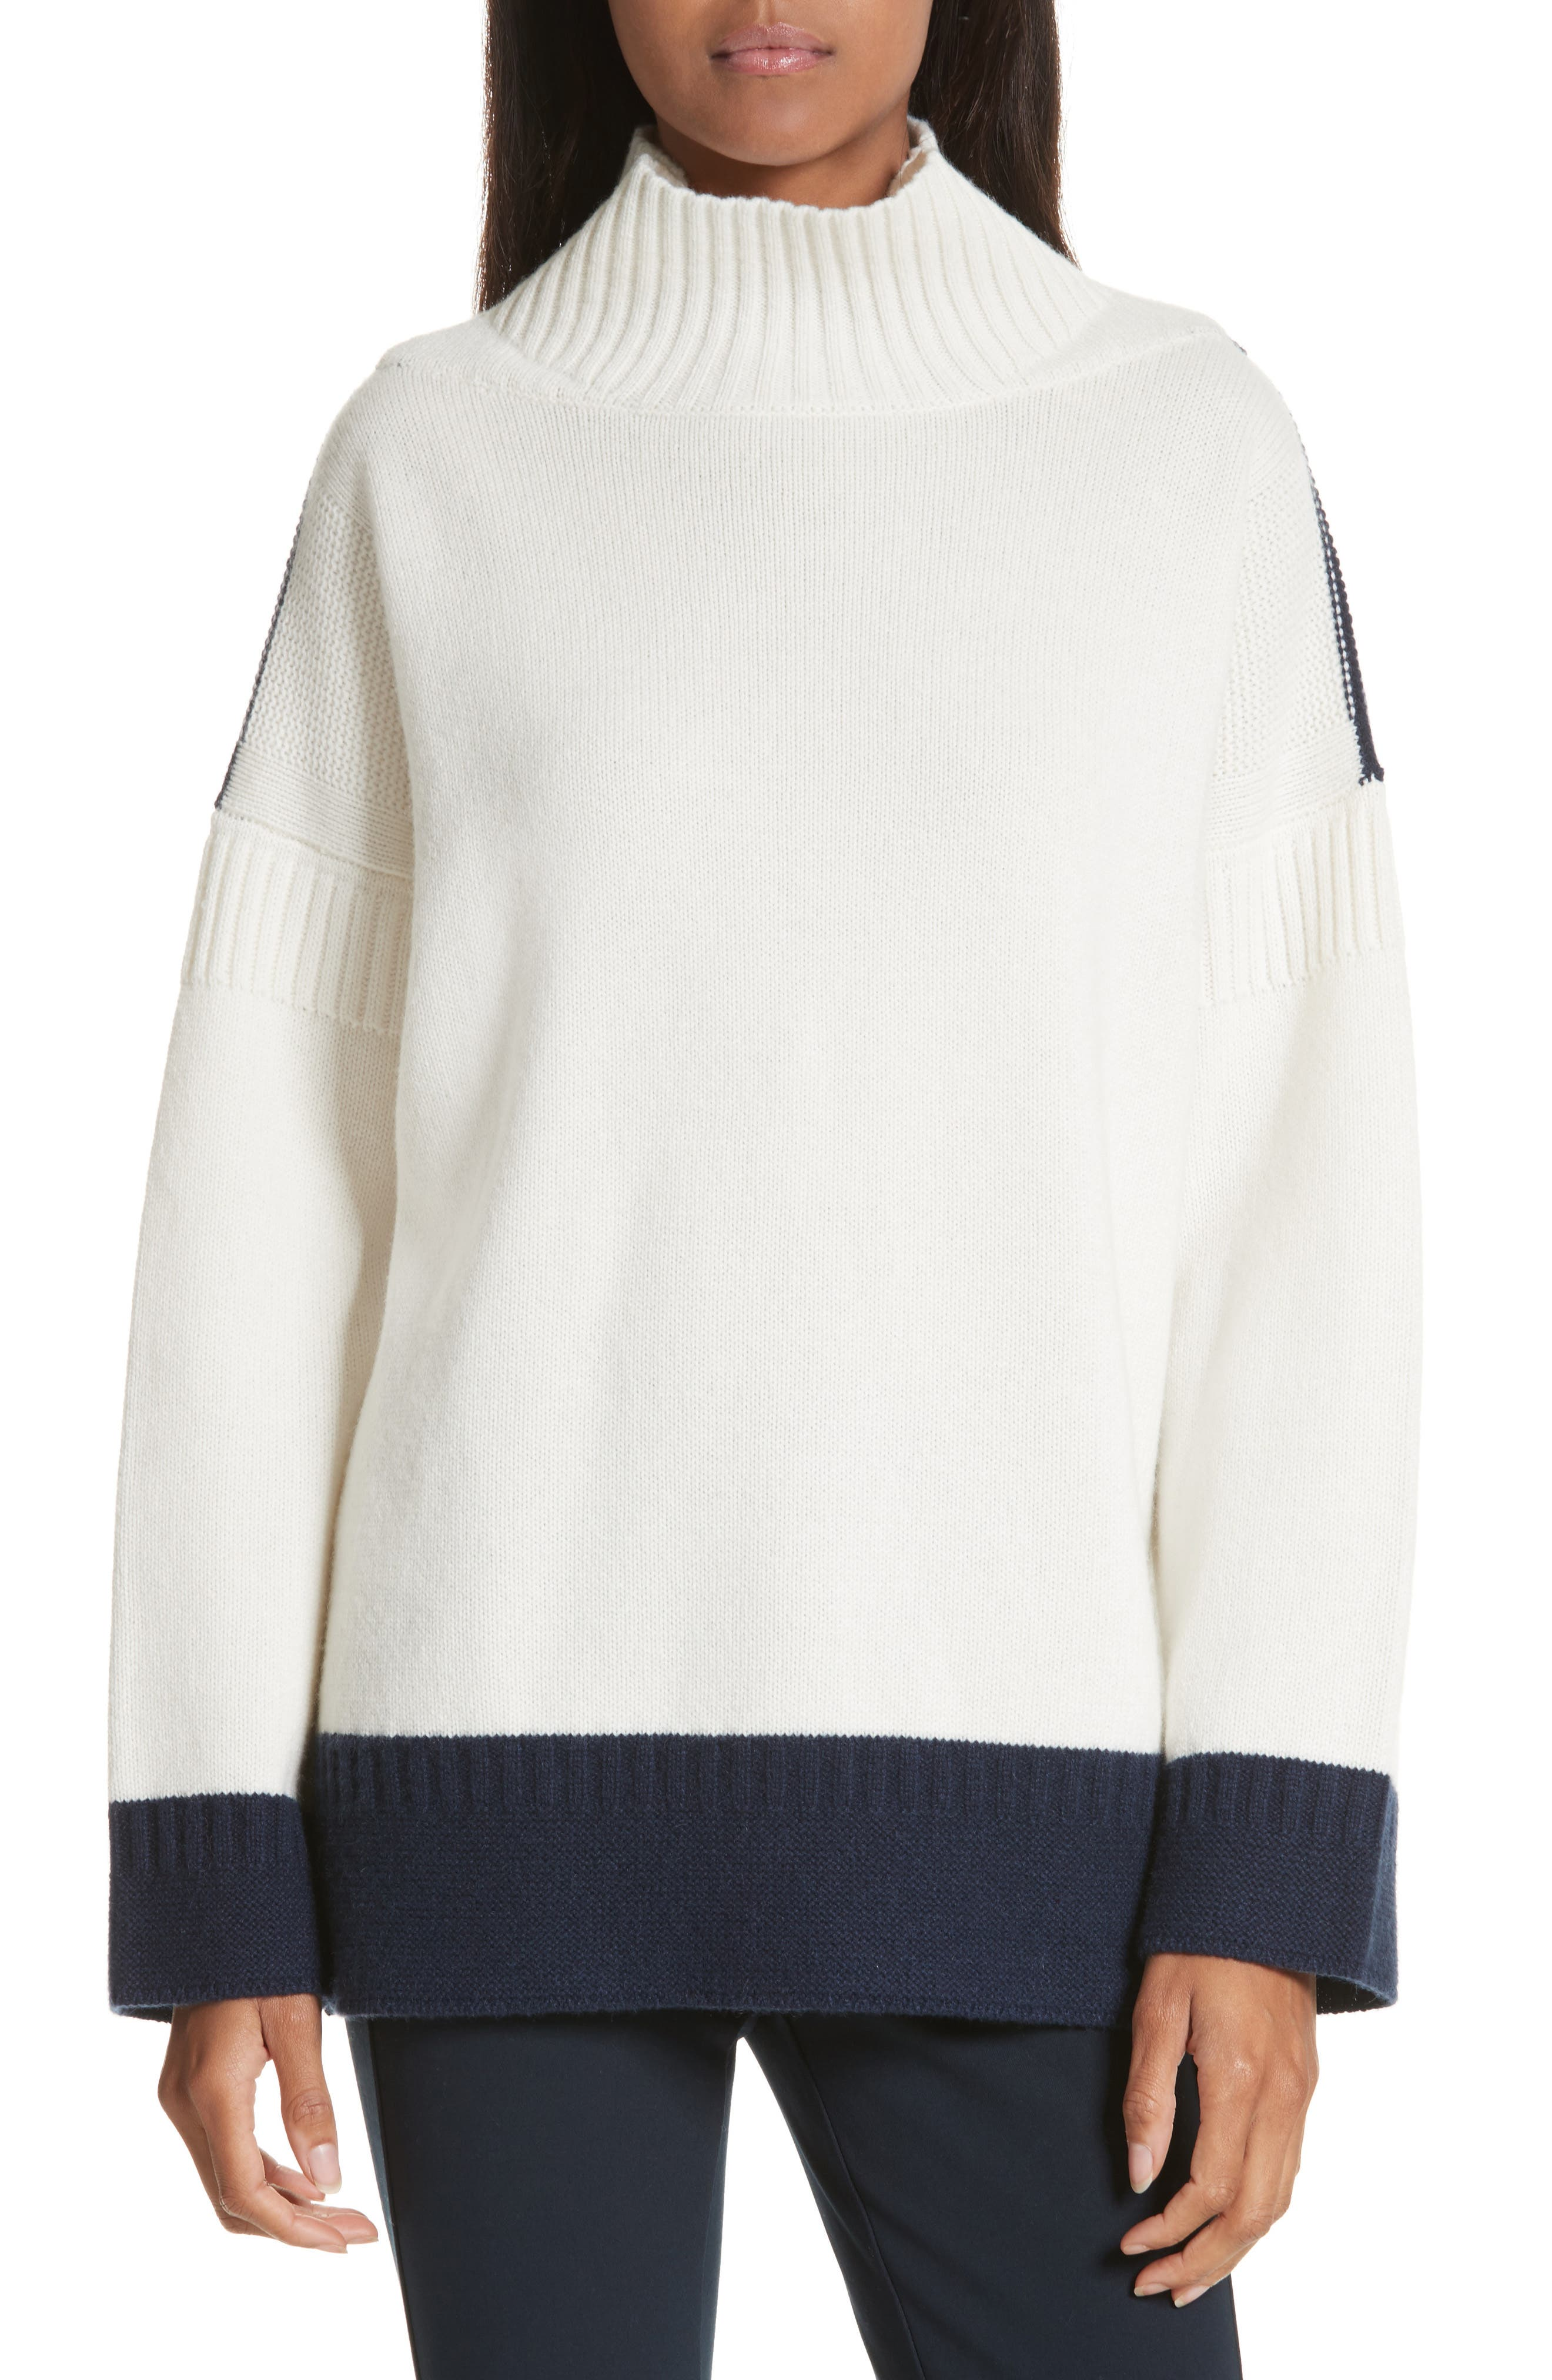 Aubree Funnel Neck Cashmere Sweater,                             Main thumbnail 1, color,                             Ivory/Navy